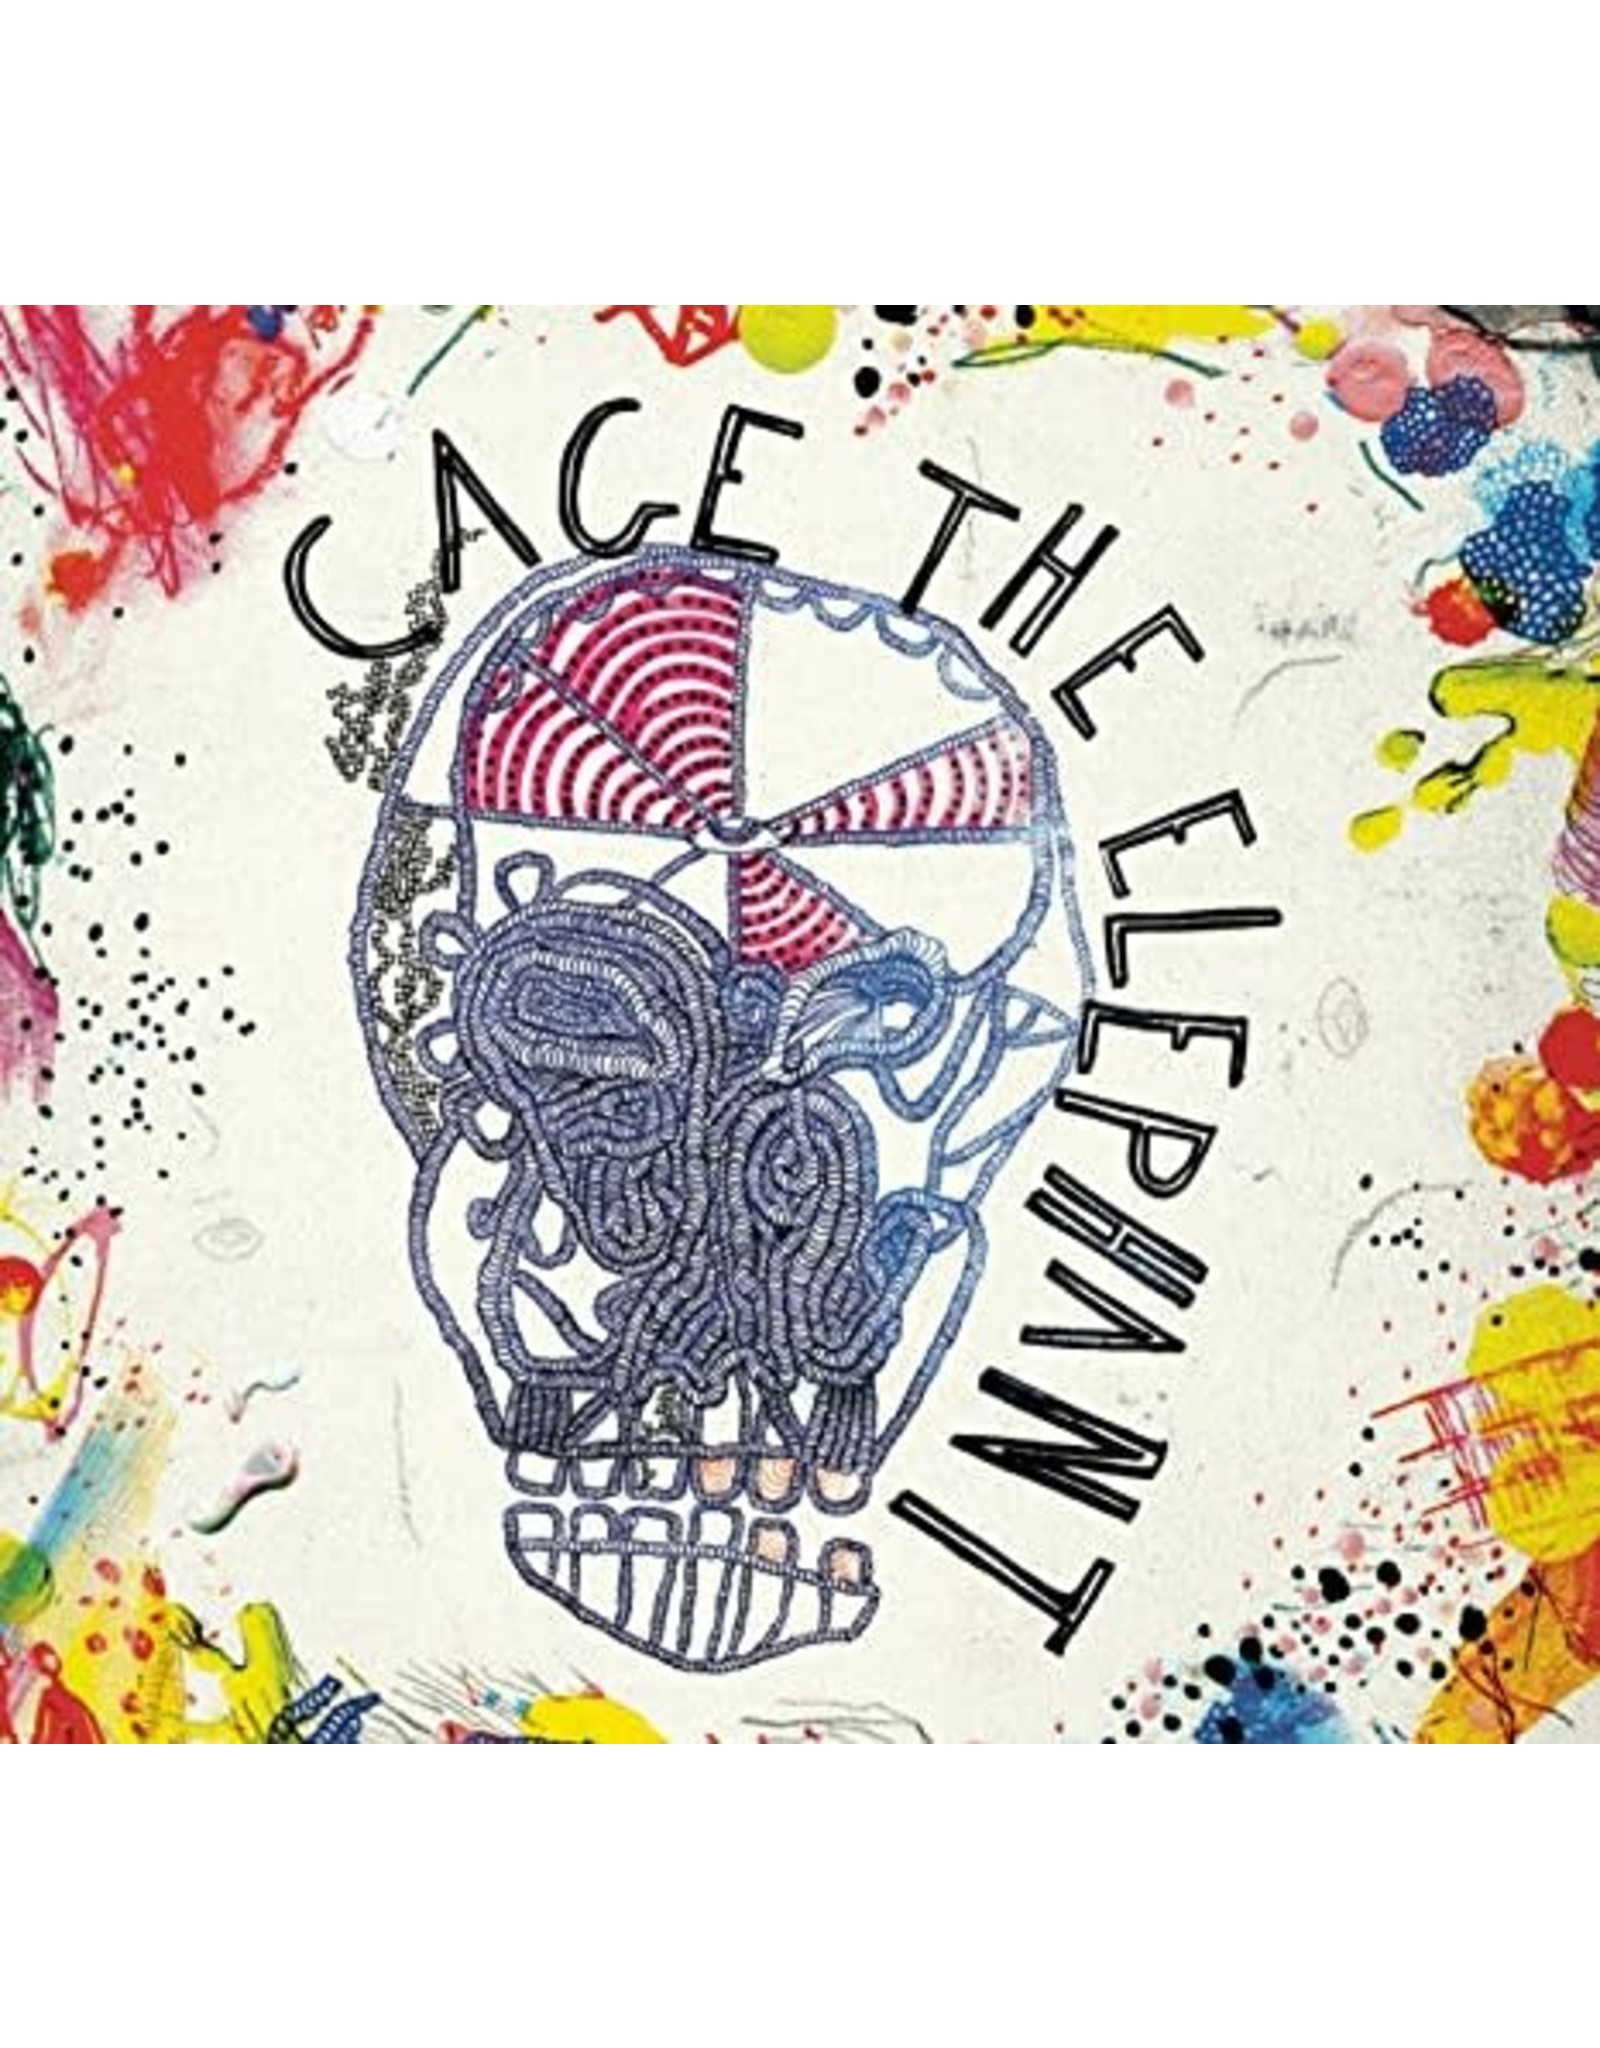 Cage The Elephant - S/T LP